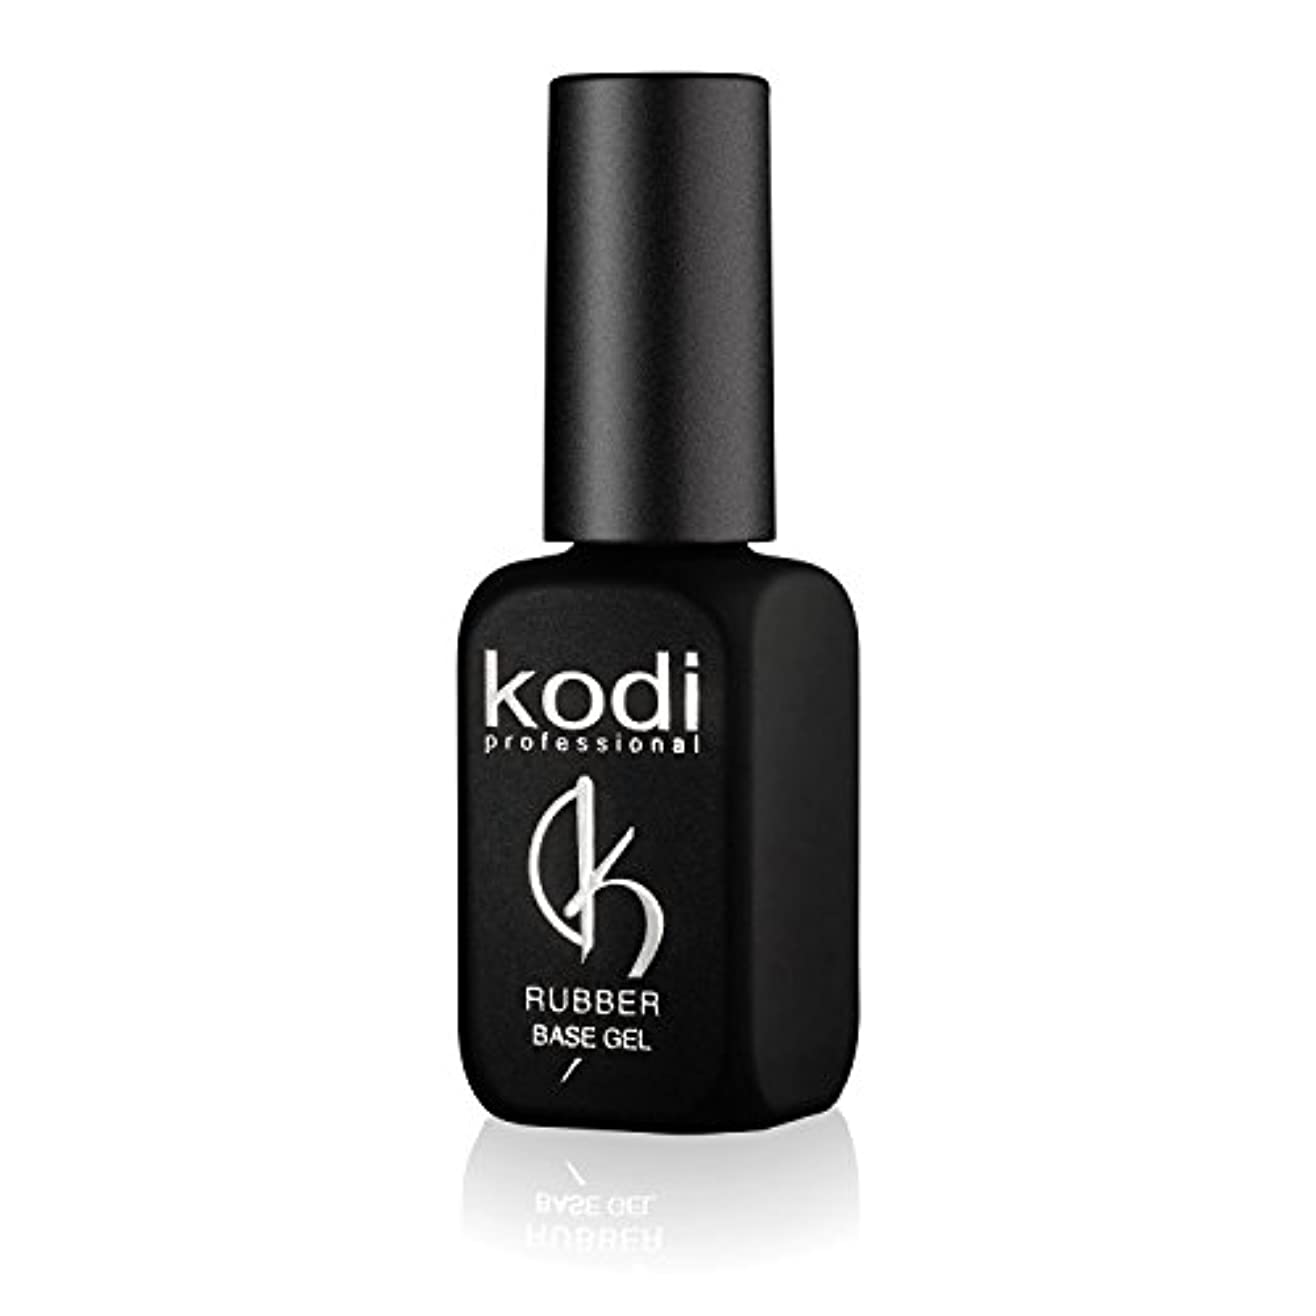 ステップ春部分的にProfessional Rubber Base Gel By Kodi | 12ml 0.42 oz | Soak Off, Polish Fingernails Coat Gel | For Long Lasting...